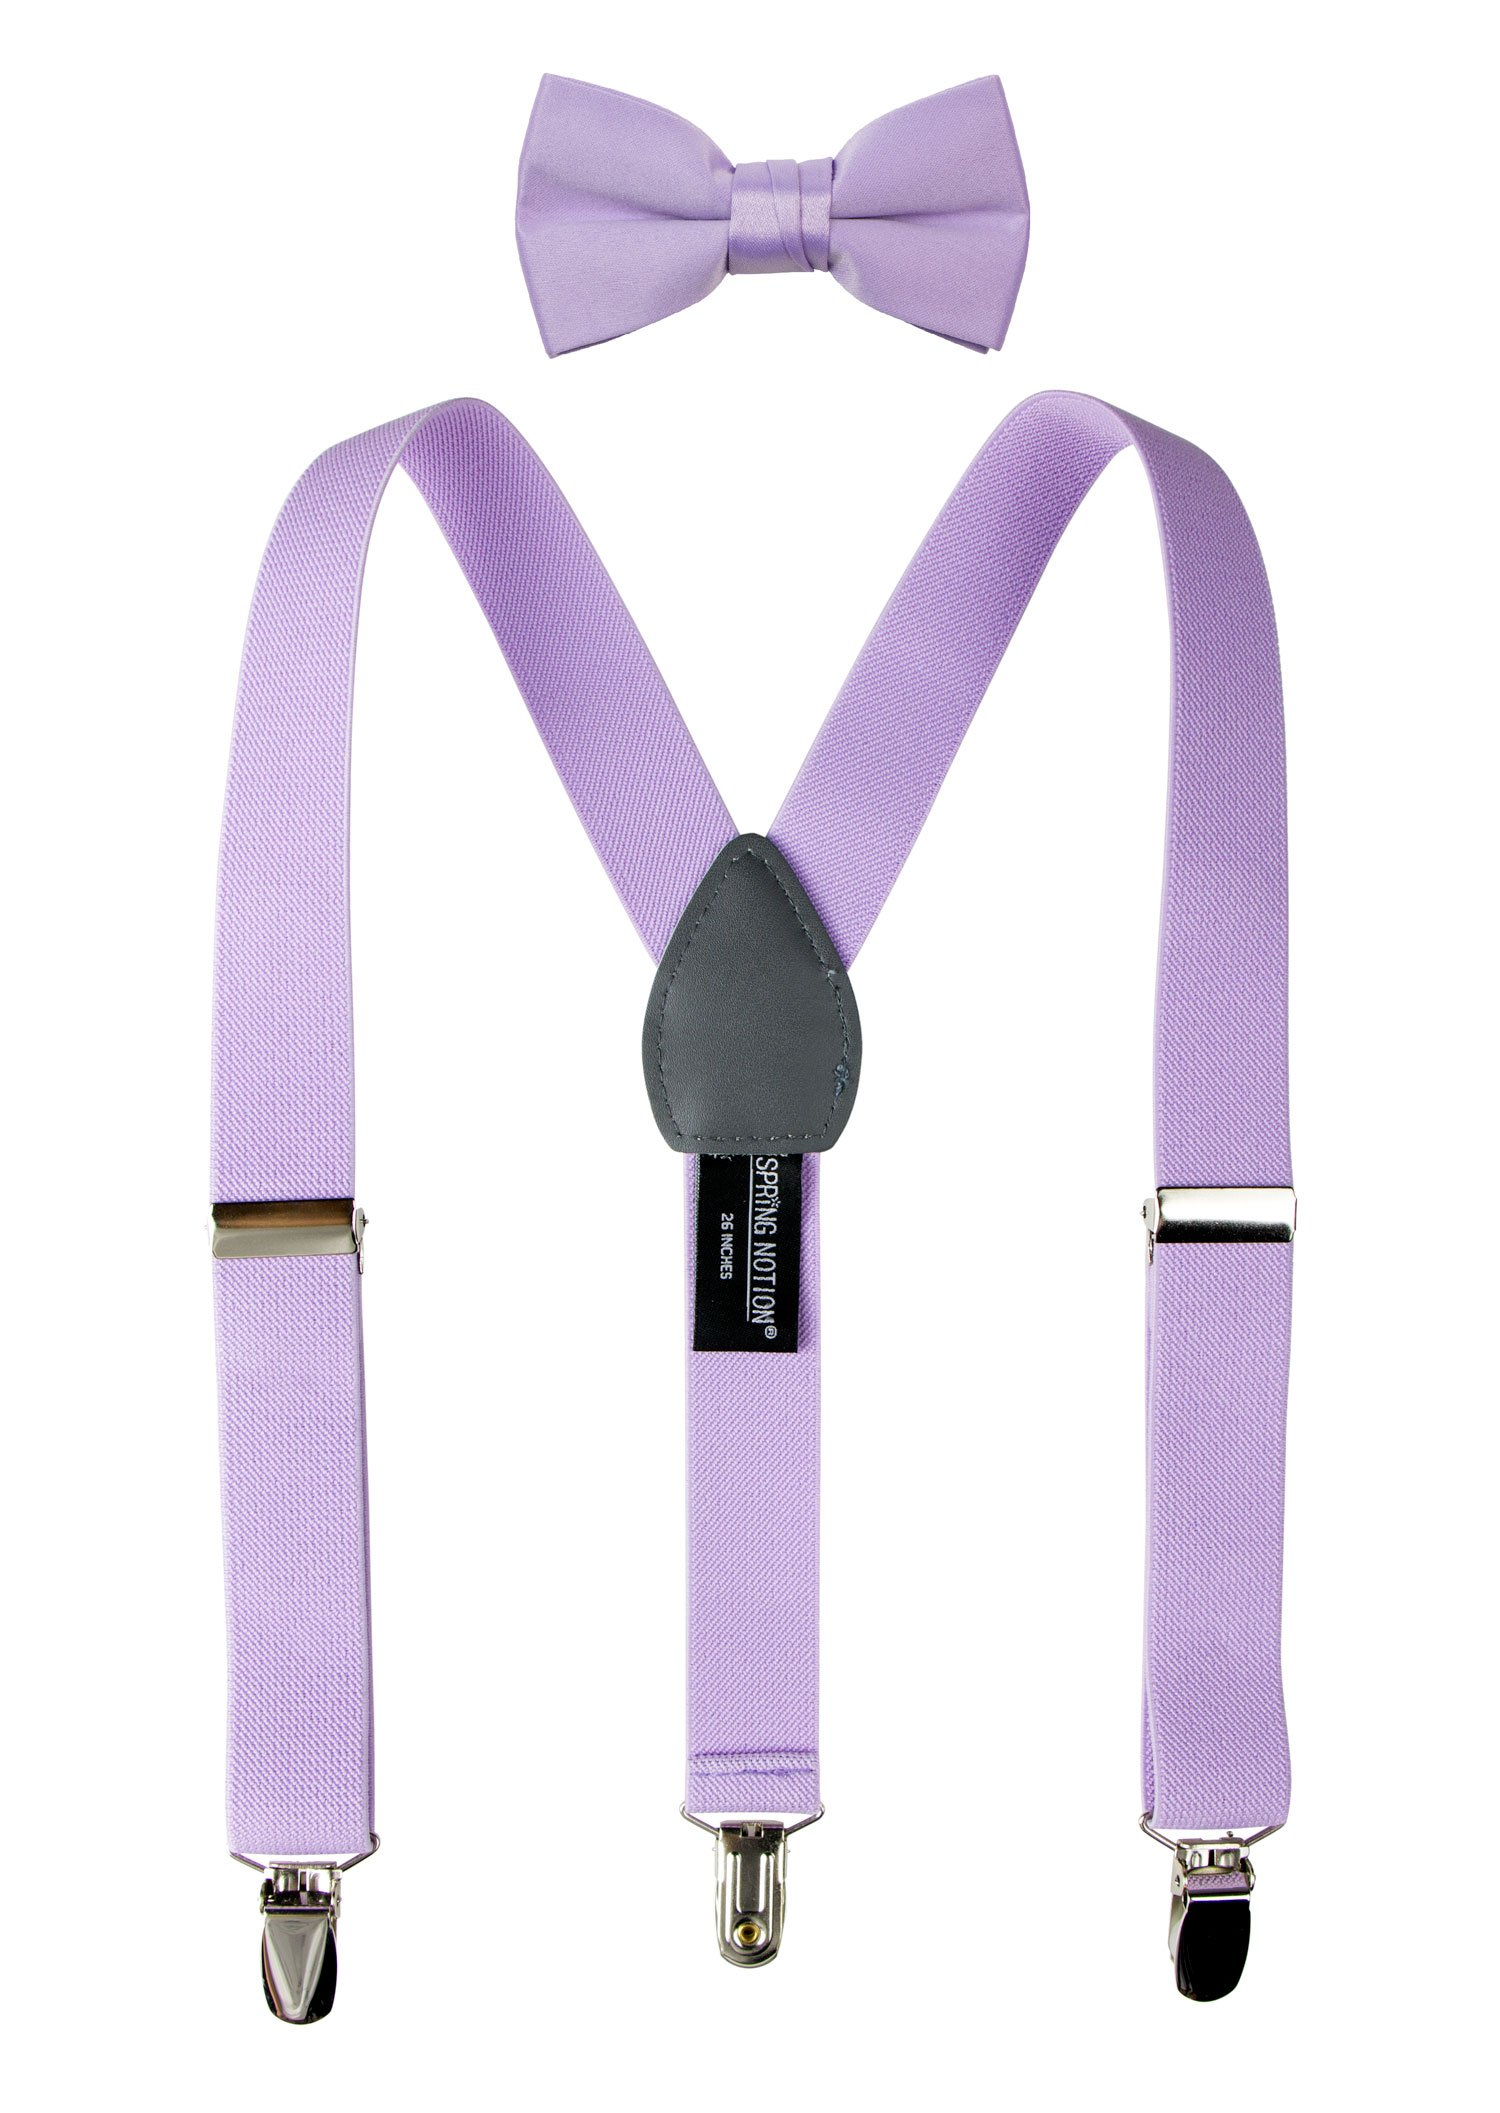 Spring Notion Boys' Suspenders and Solid Color Bowtie Set Lilac Large